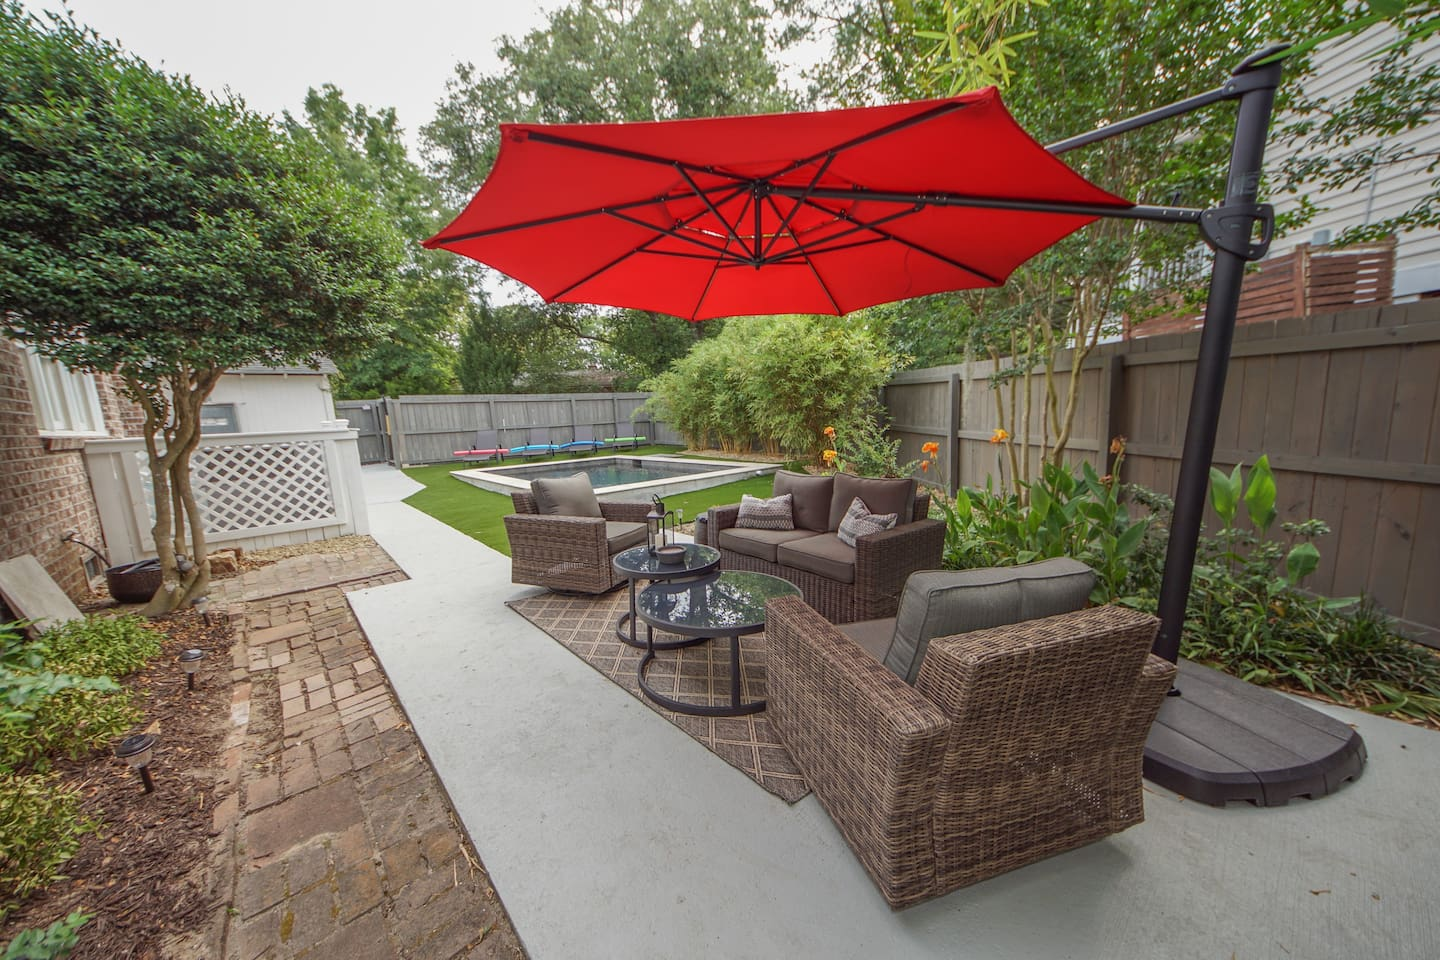 Great outdoor area with pool and tons of patio furniture